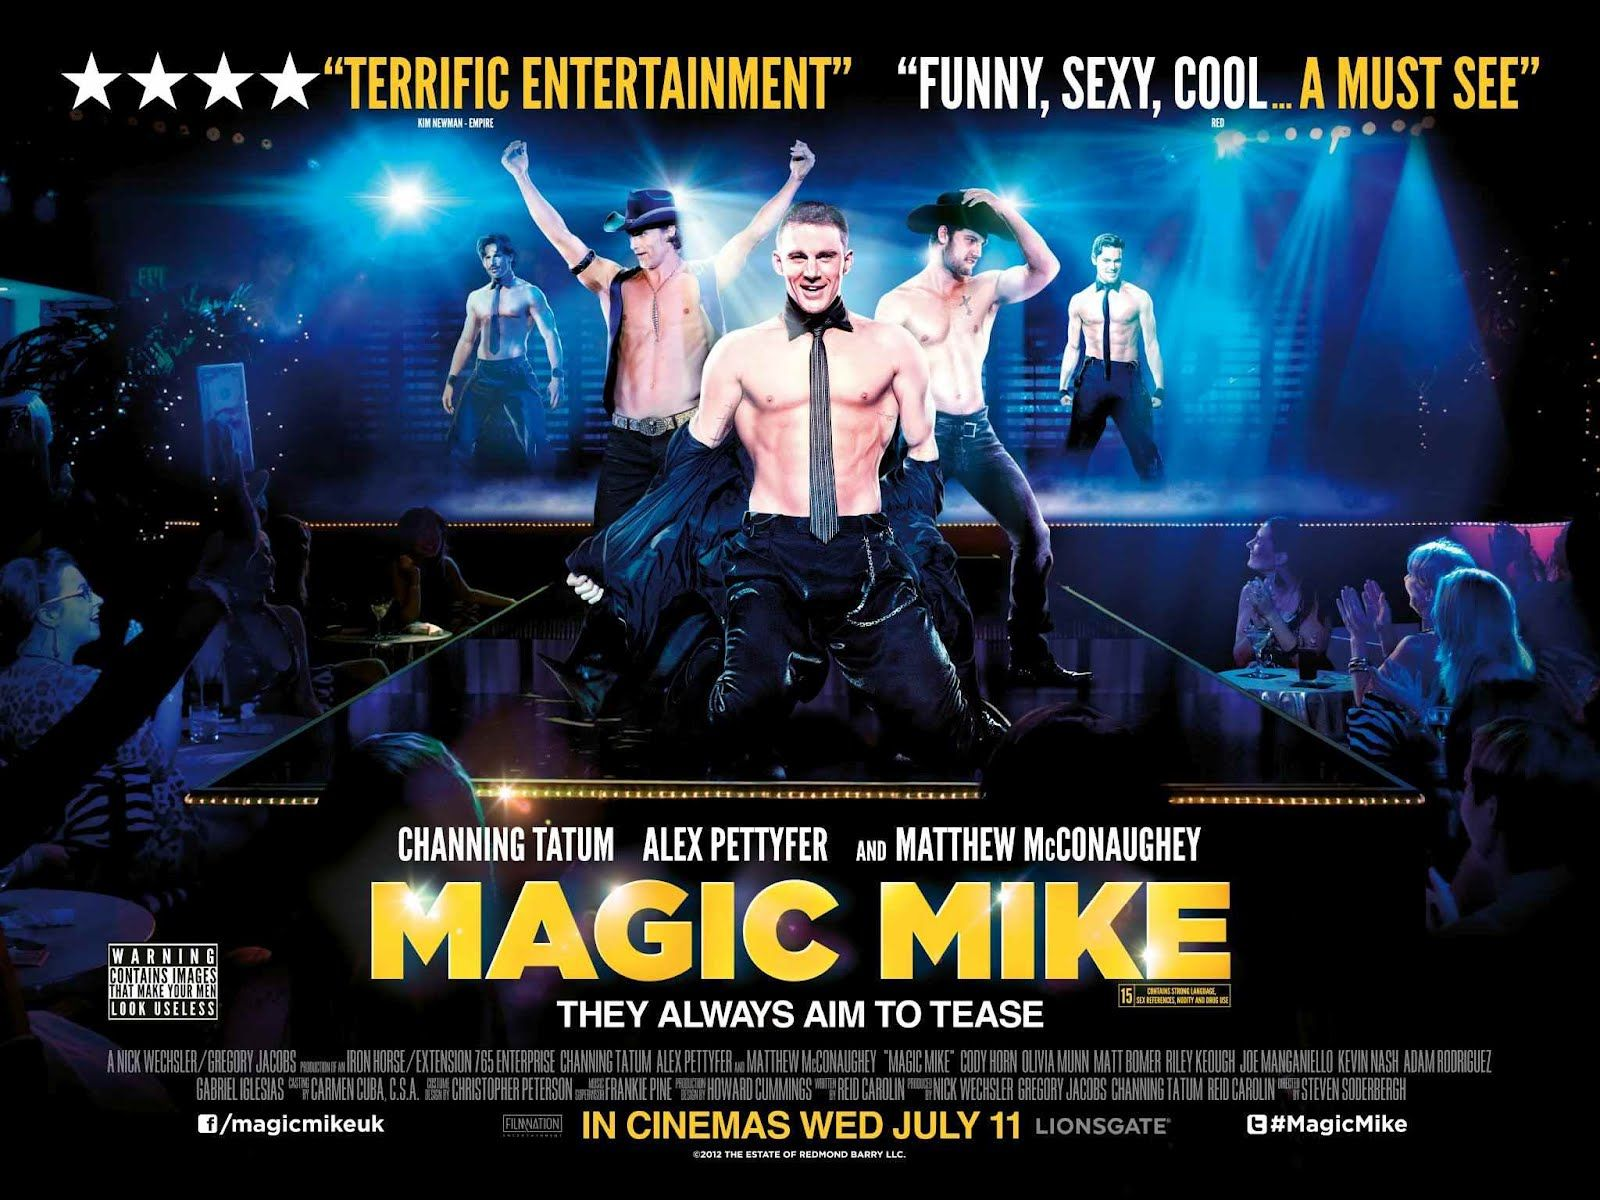 magic mike poster | Magic mike movie, Magic mike, Channing tatum